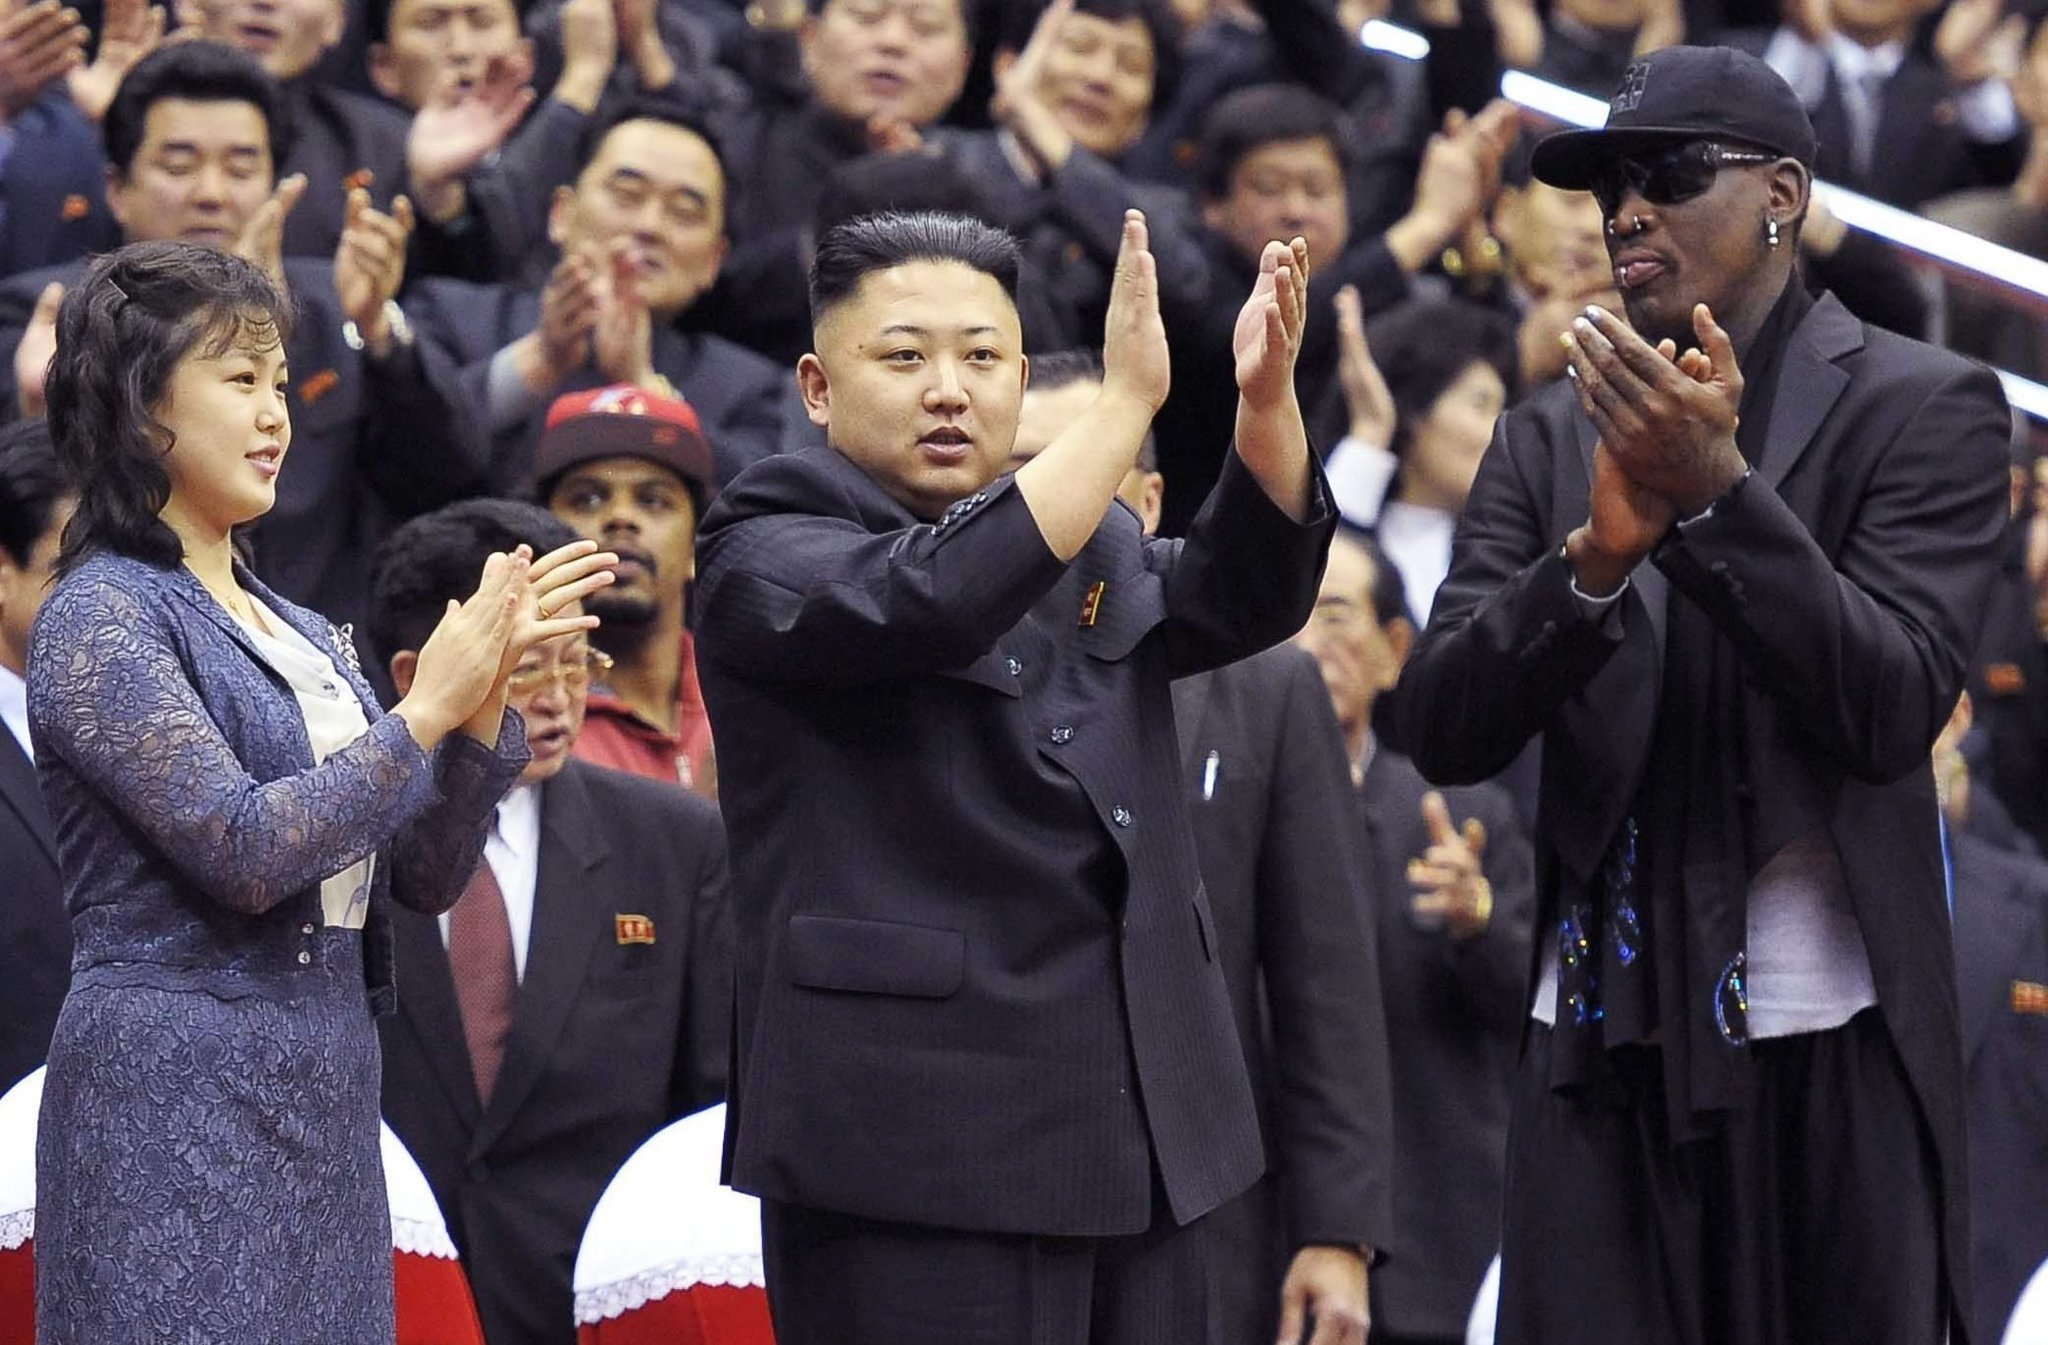 Dennis Rodman talks North Korea diplomacy before an au nce of